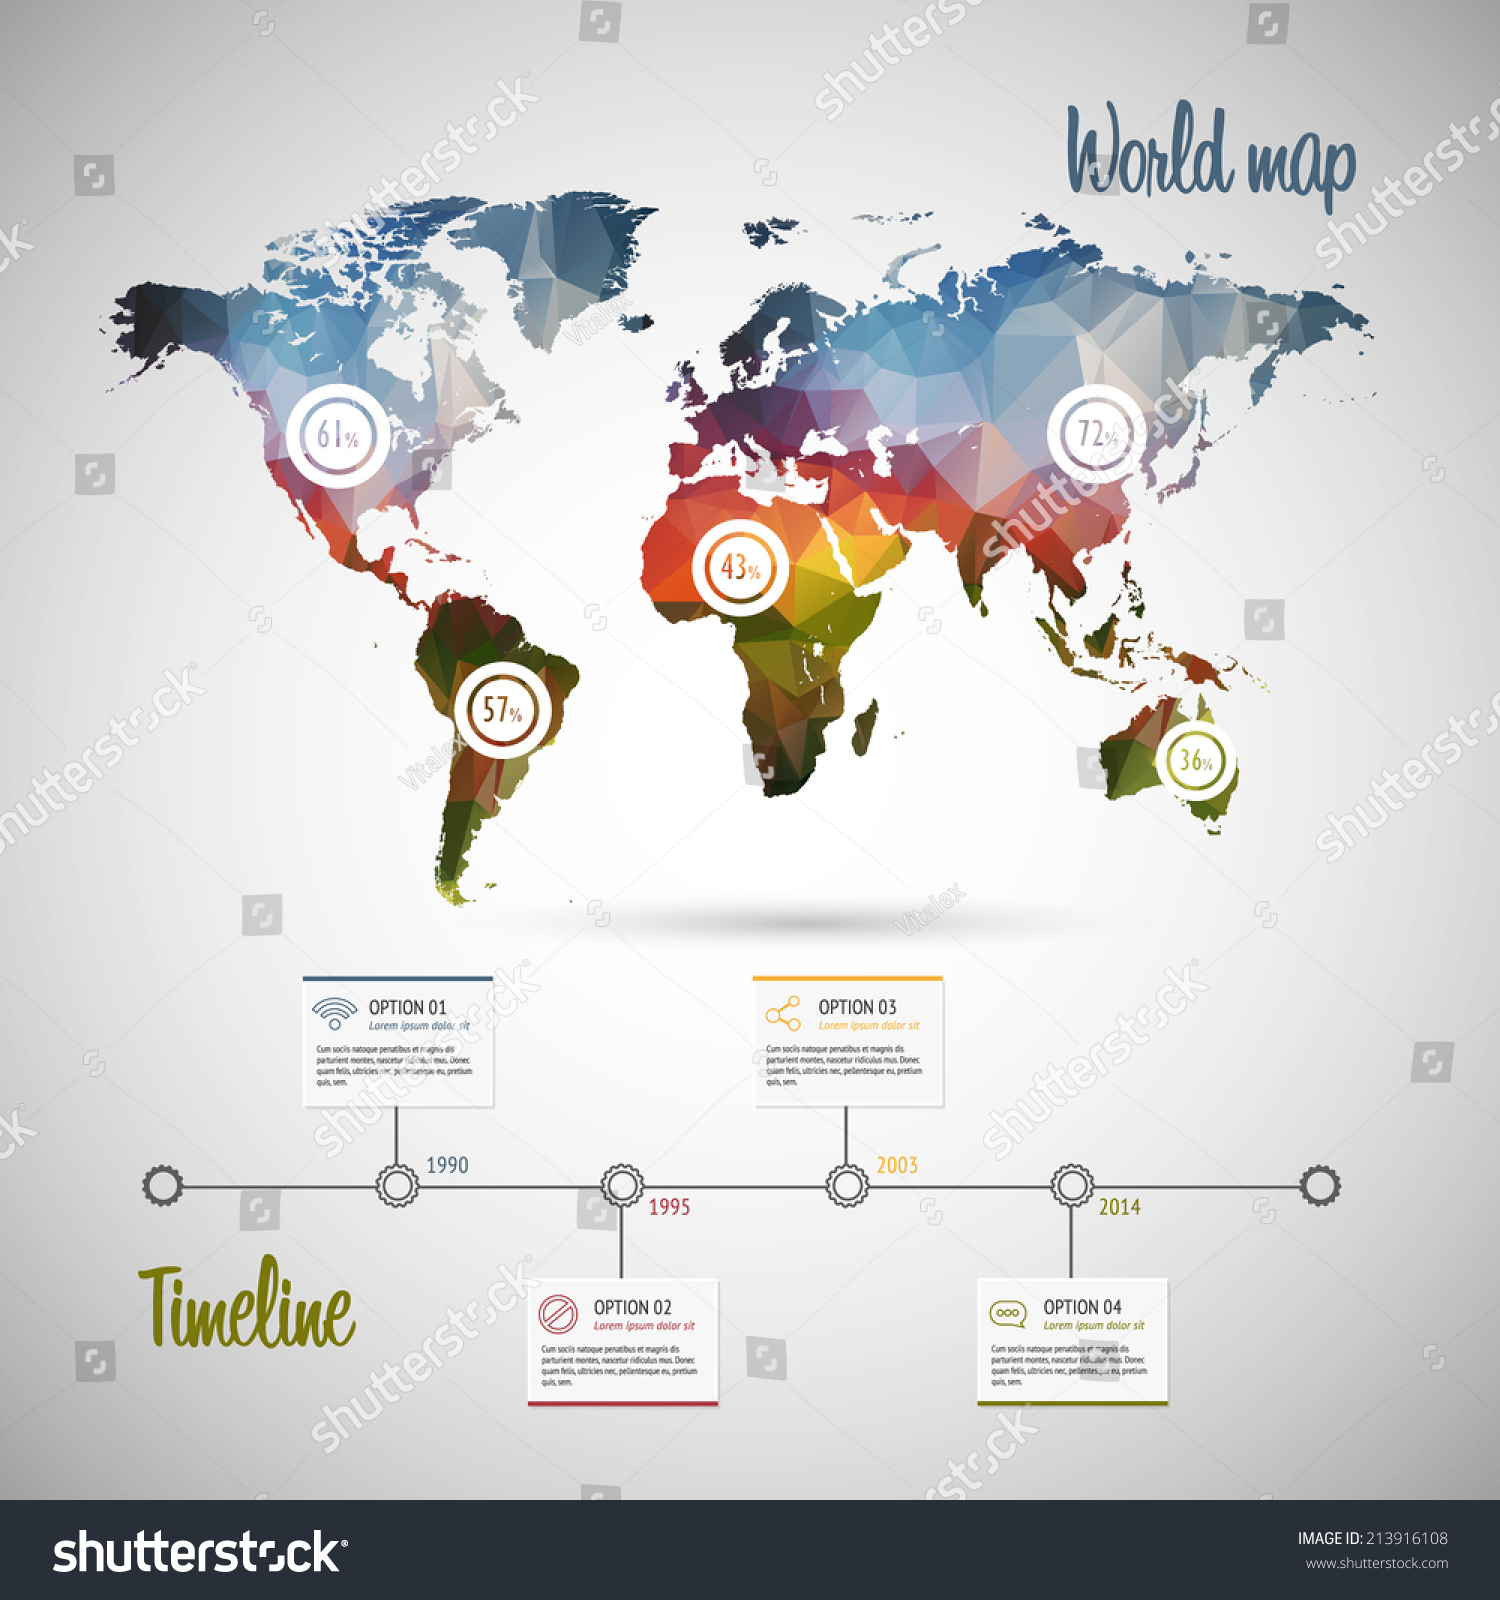 Royalty free world map infographic template showing 213916108 world map infographic template showing the demographic areas with proportionate percentages of statistics and modern timeline gumiabroncs